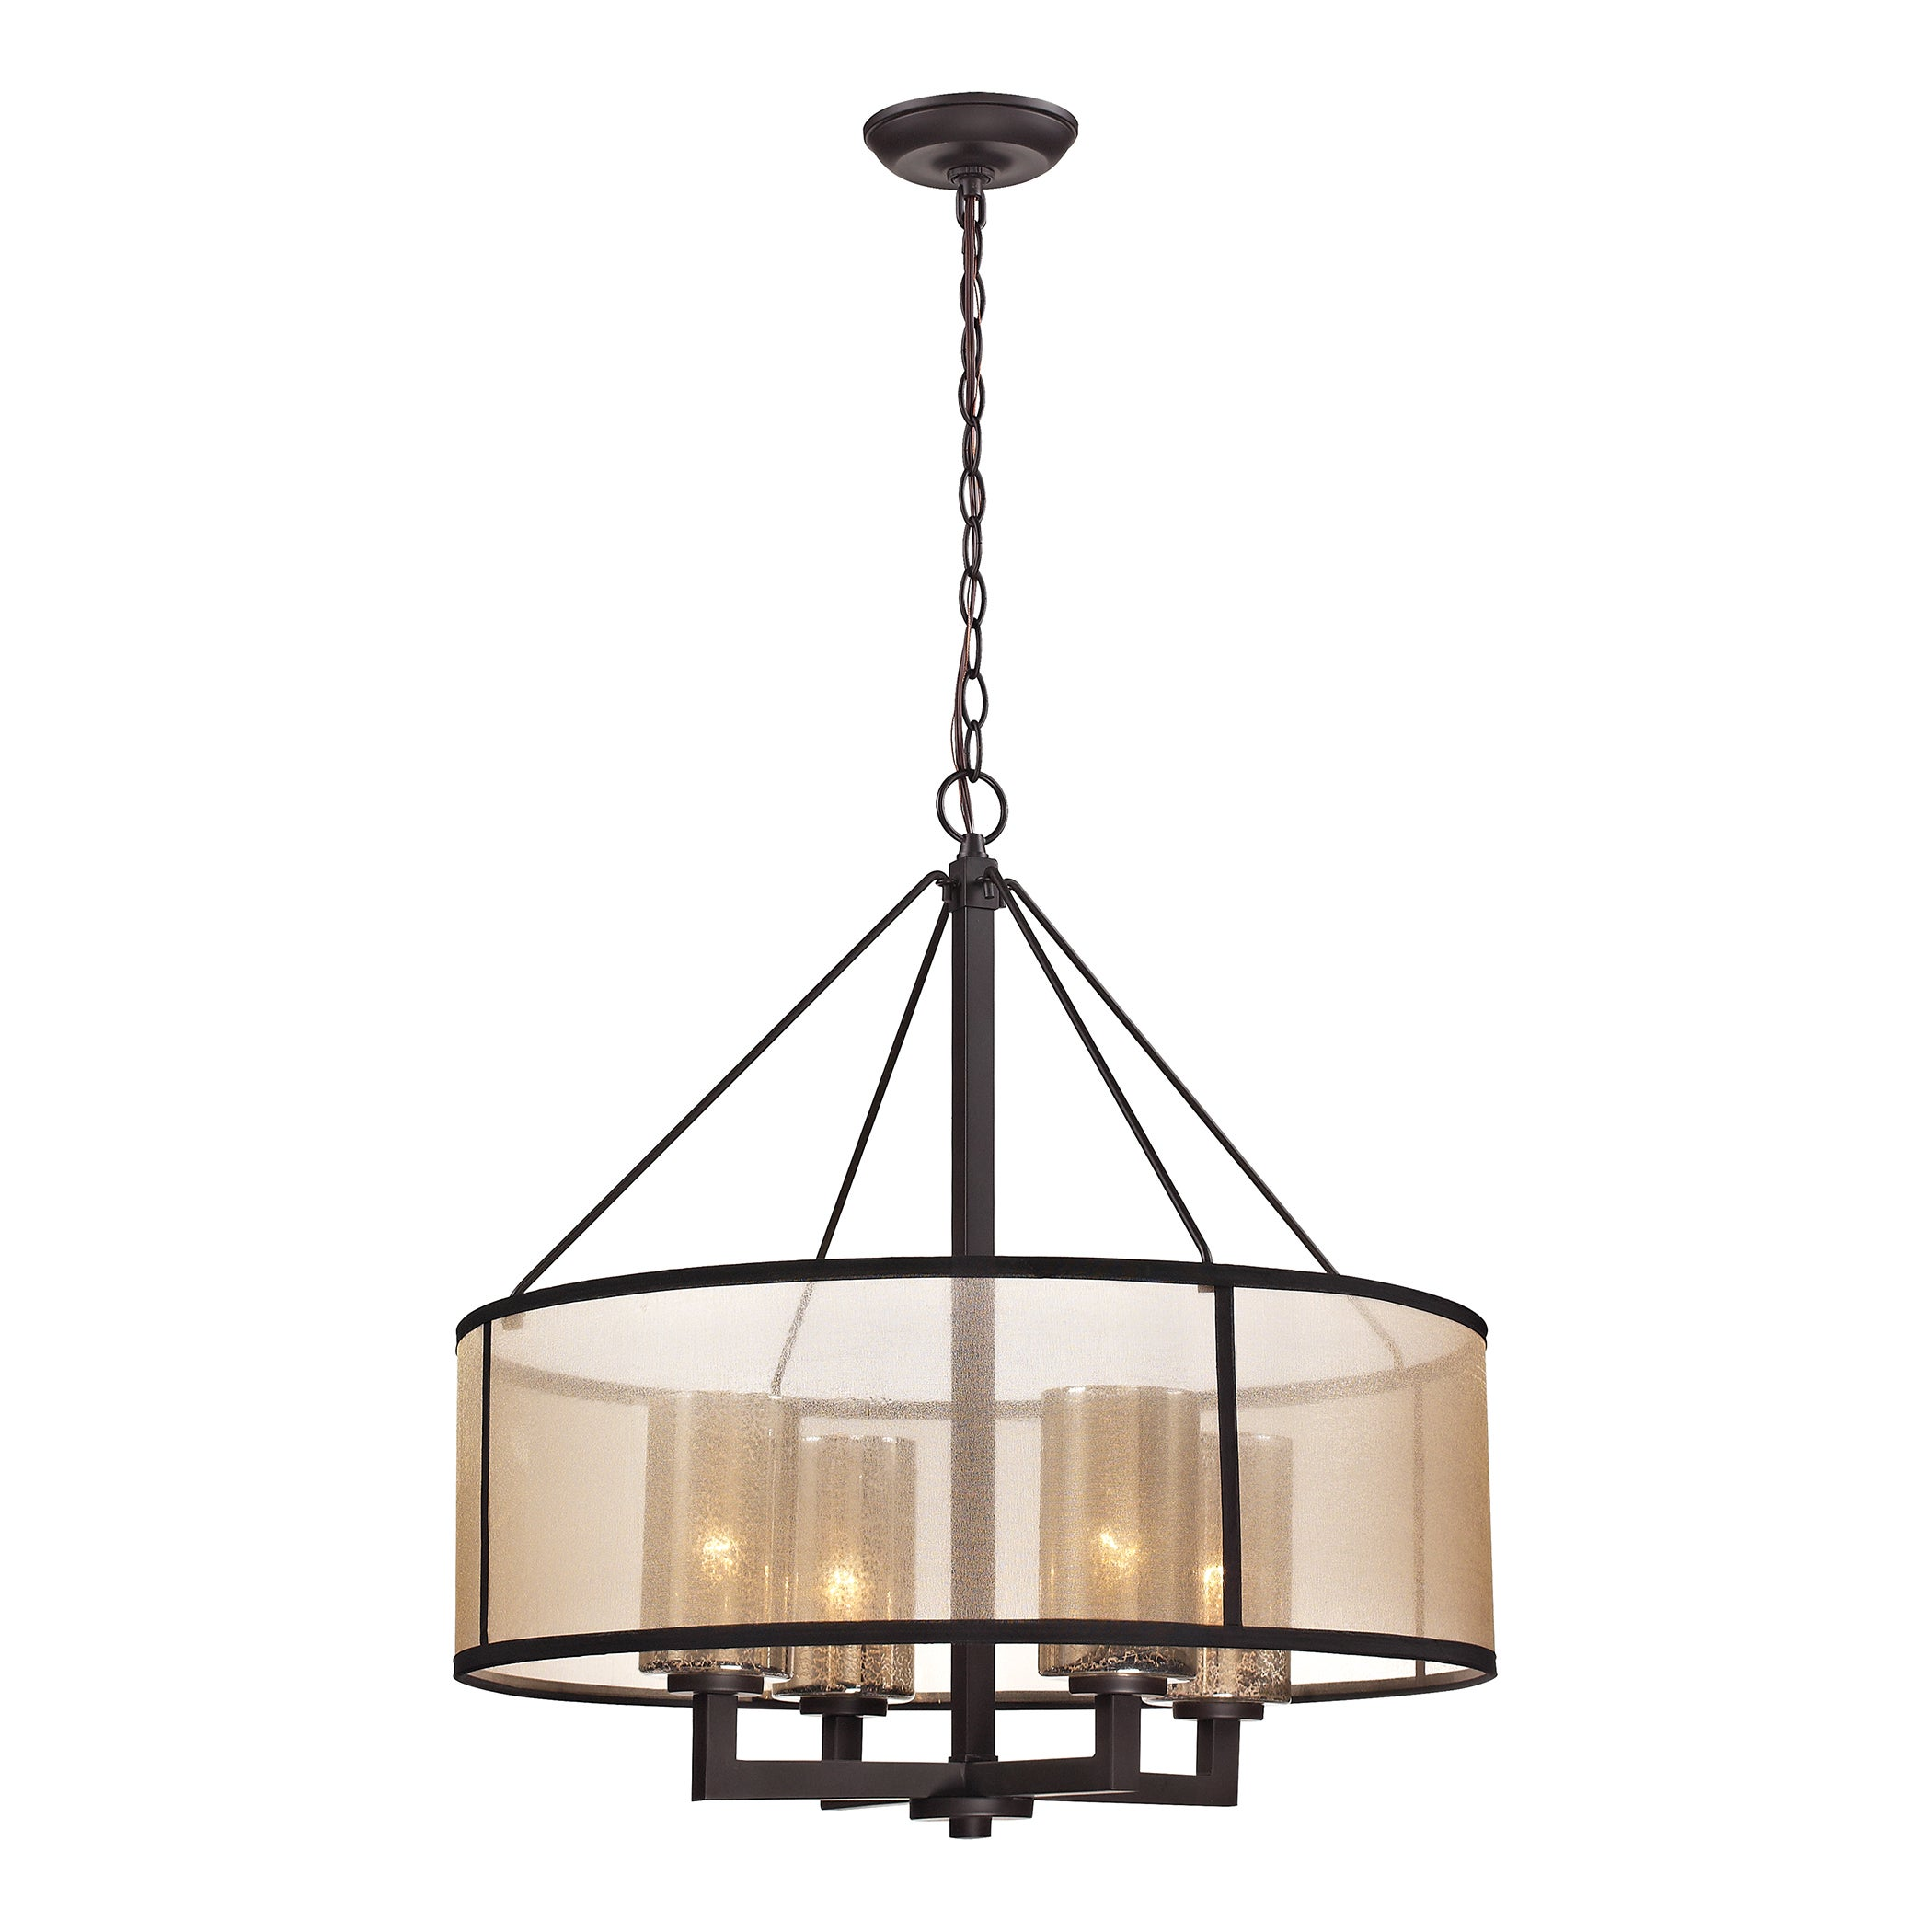 Elk Lighting Diffusion 4 Light Oil Rubbed Bronze Chandelier On Free Shipping Today 9316435